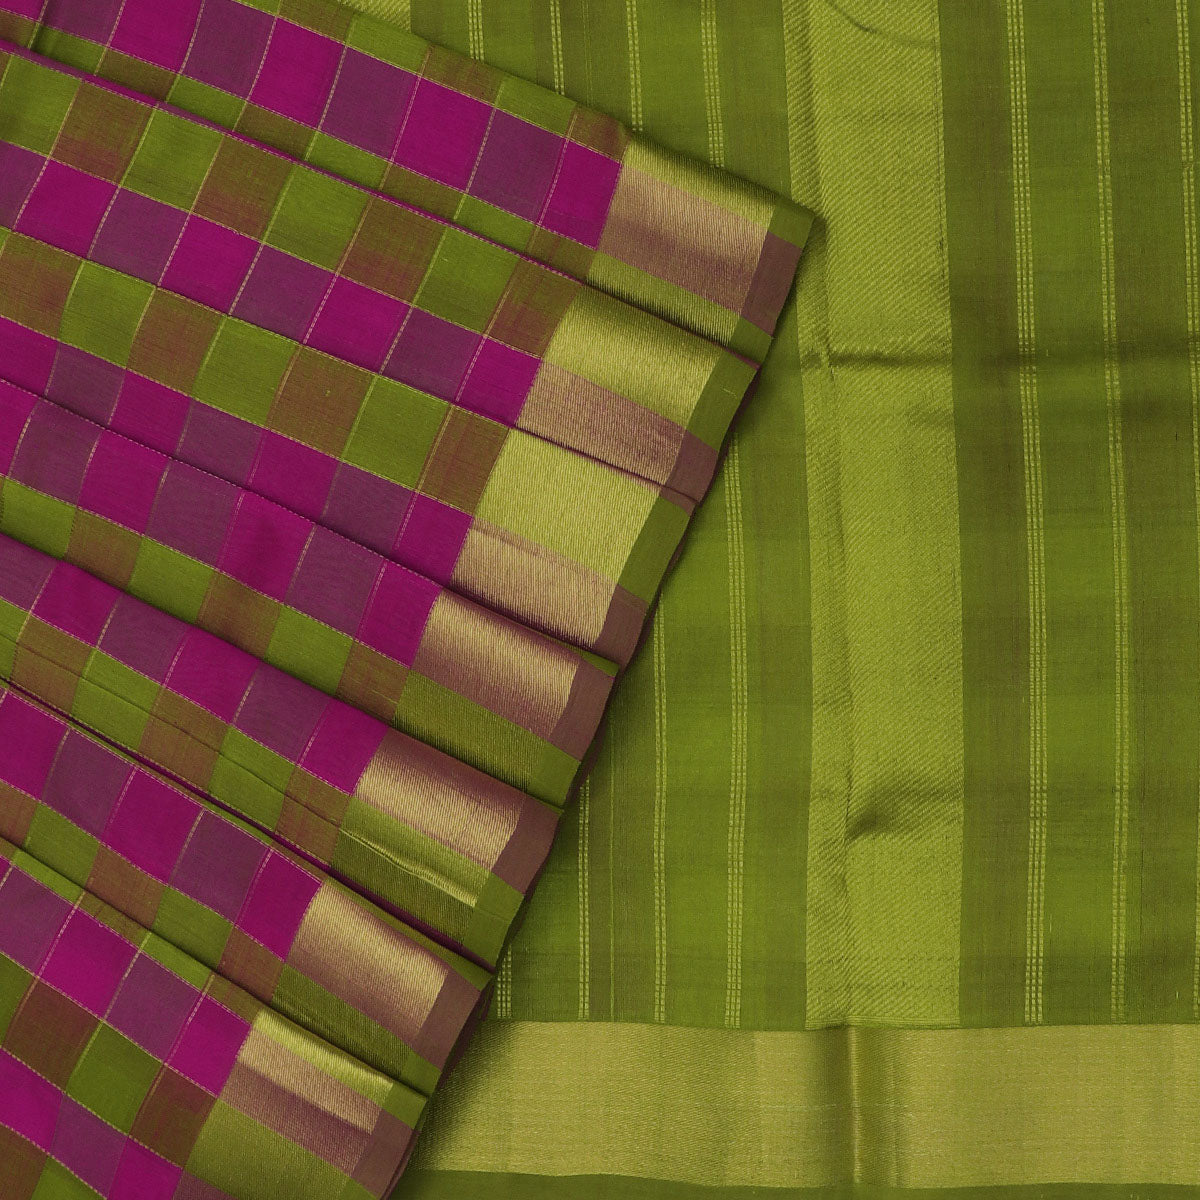 Silk Cotton Saree Pink and Mehandi Green checks with simple zari border 9 yards